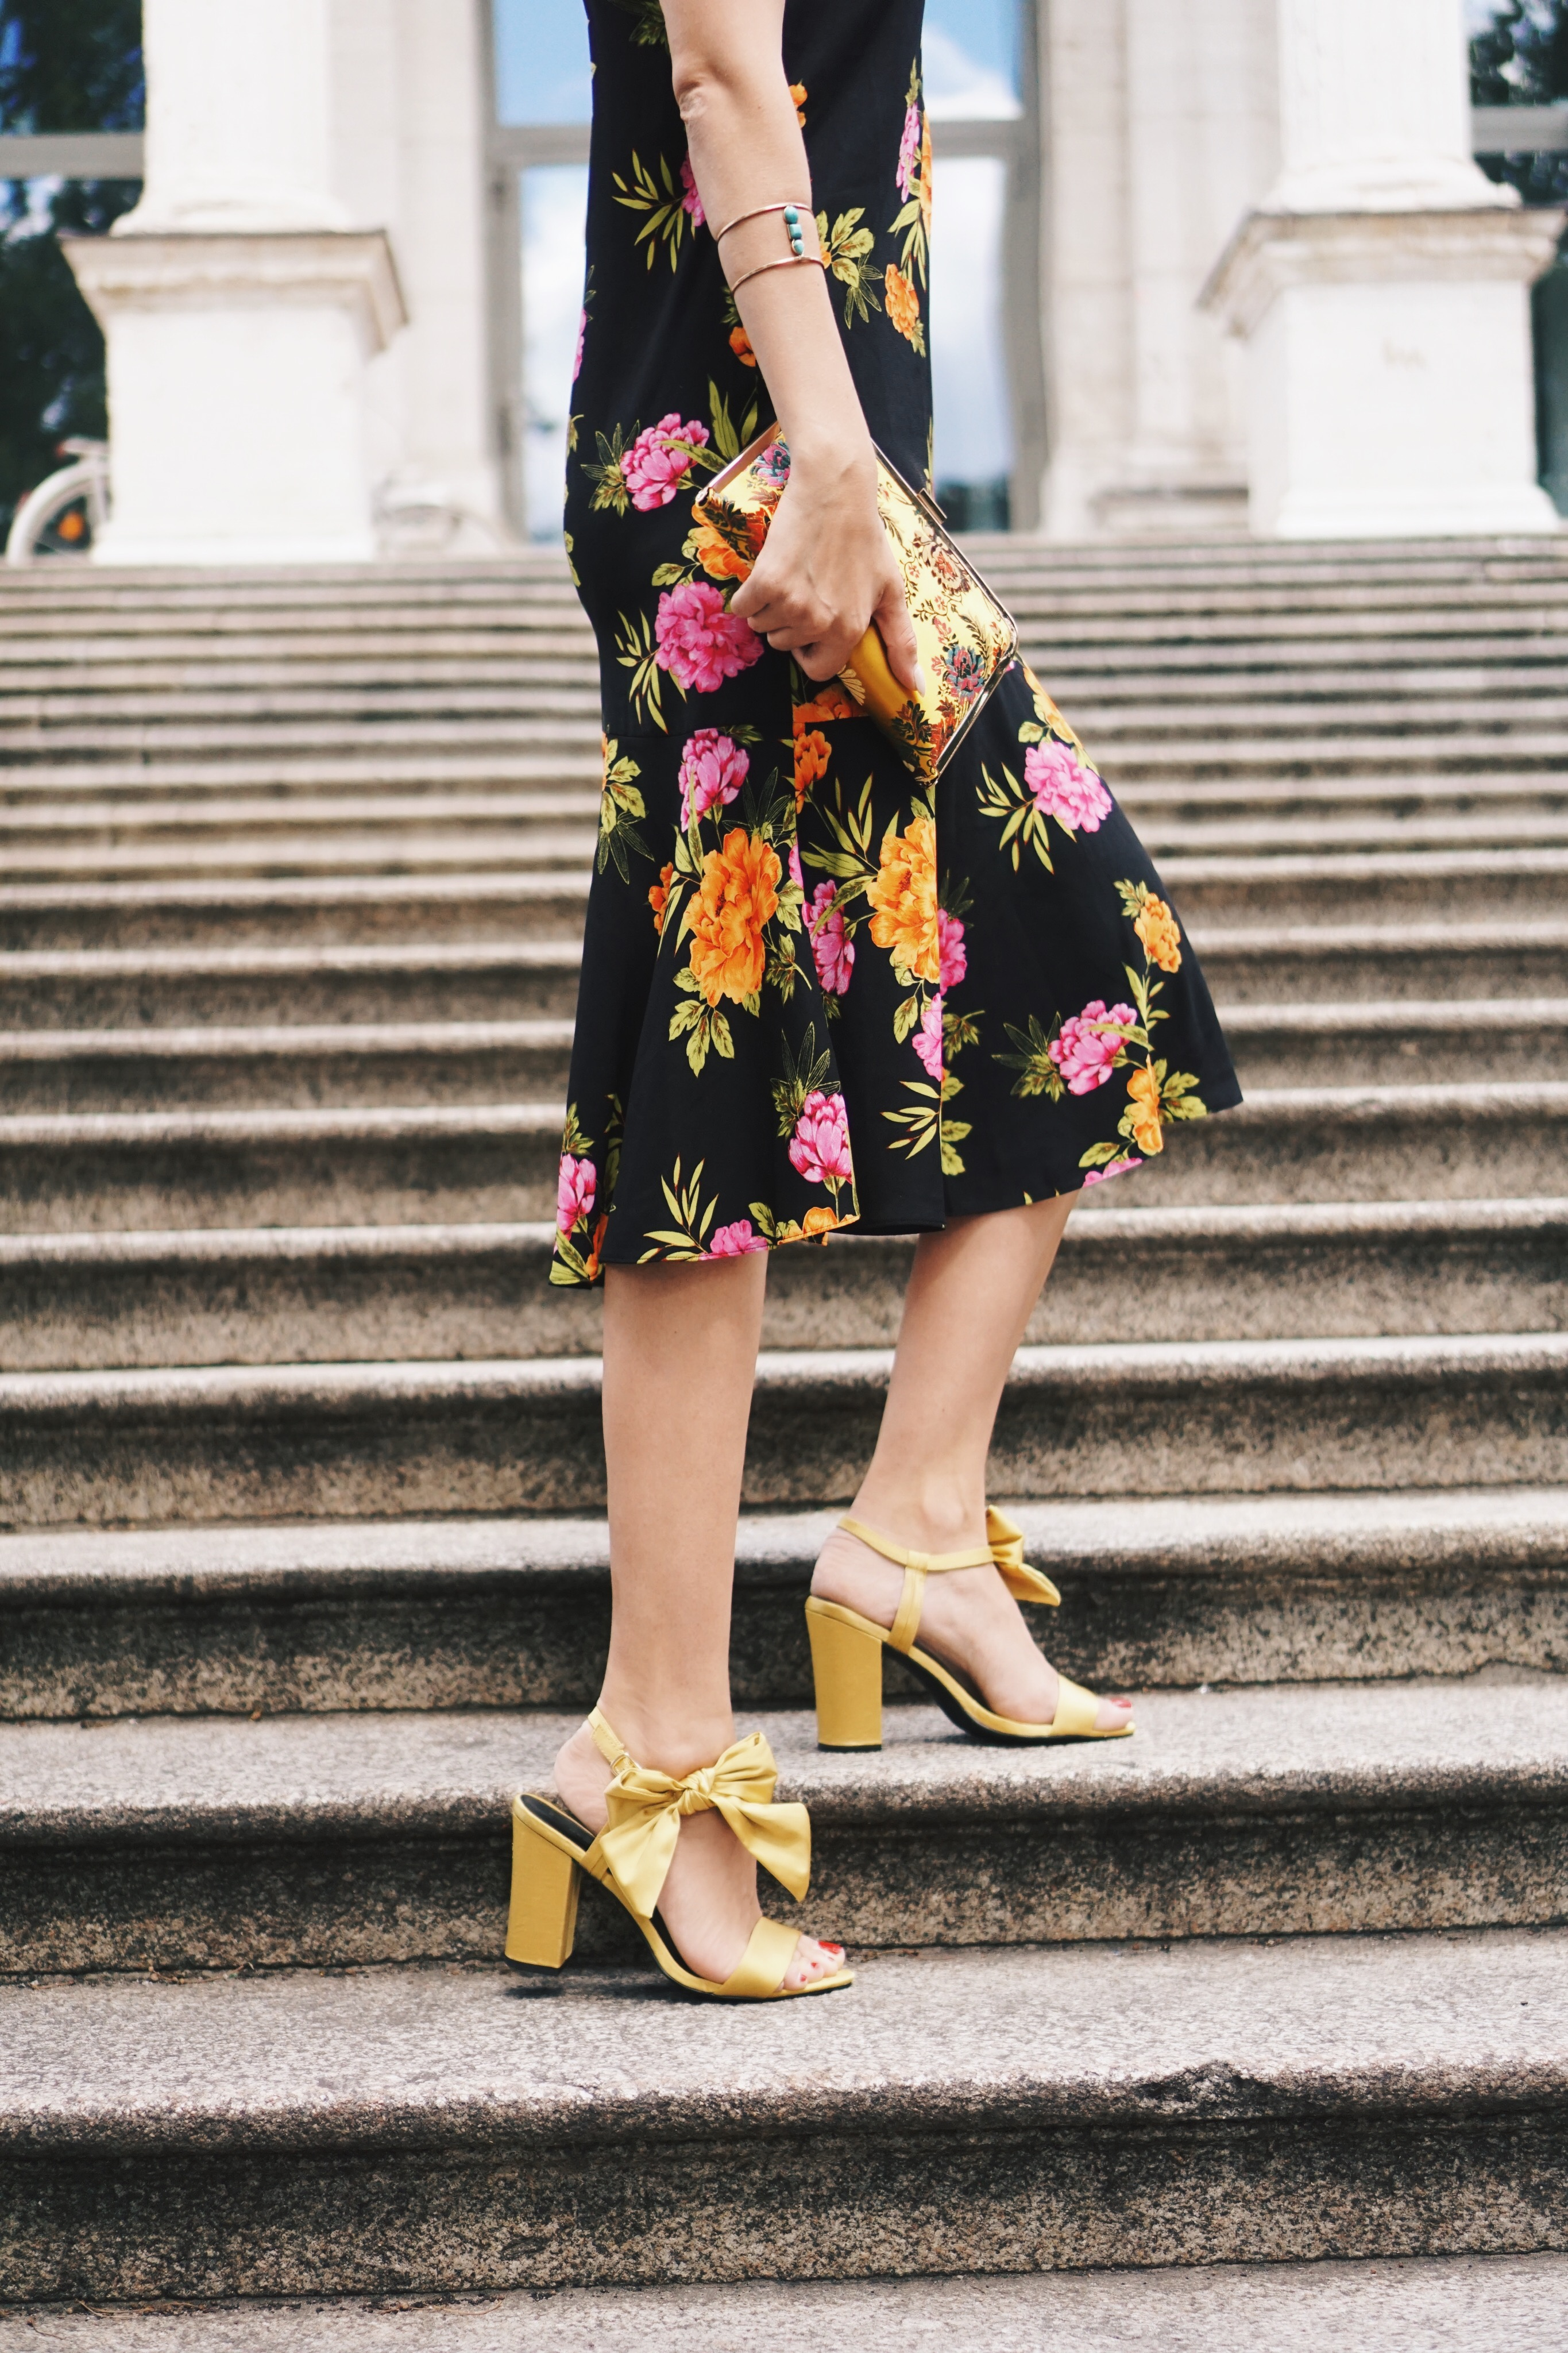 Comfy but stylish – it's all about the shoes